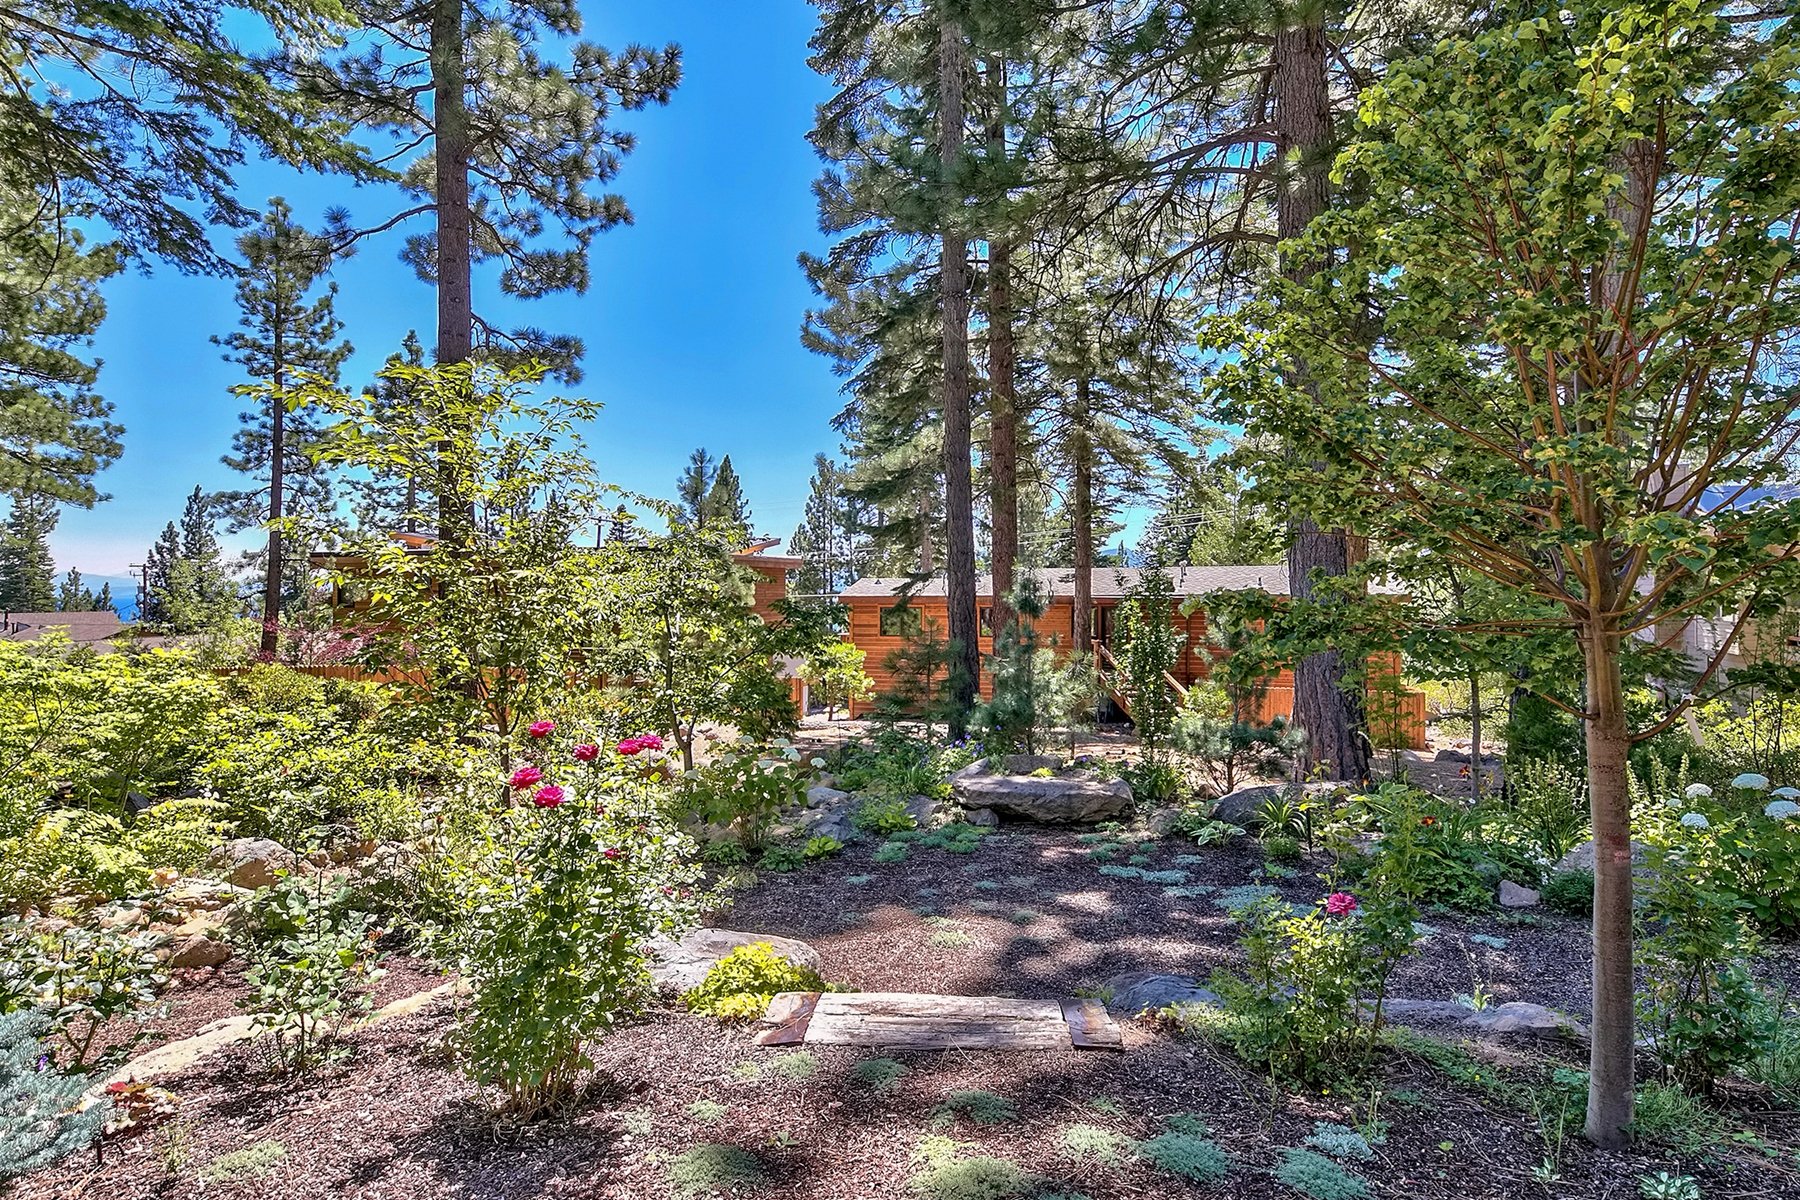 Additional photo for property listing at 137 Marlette Drive, Tahoe City, CA 137 Marlette Drive Tahoe City, California 96145 United States